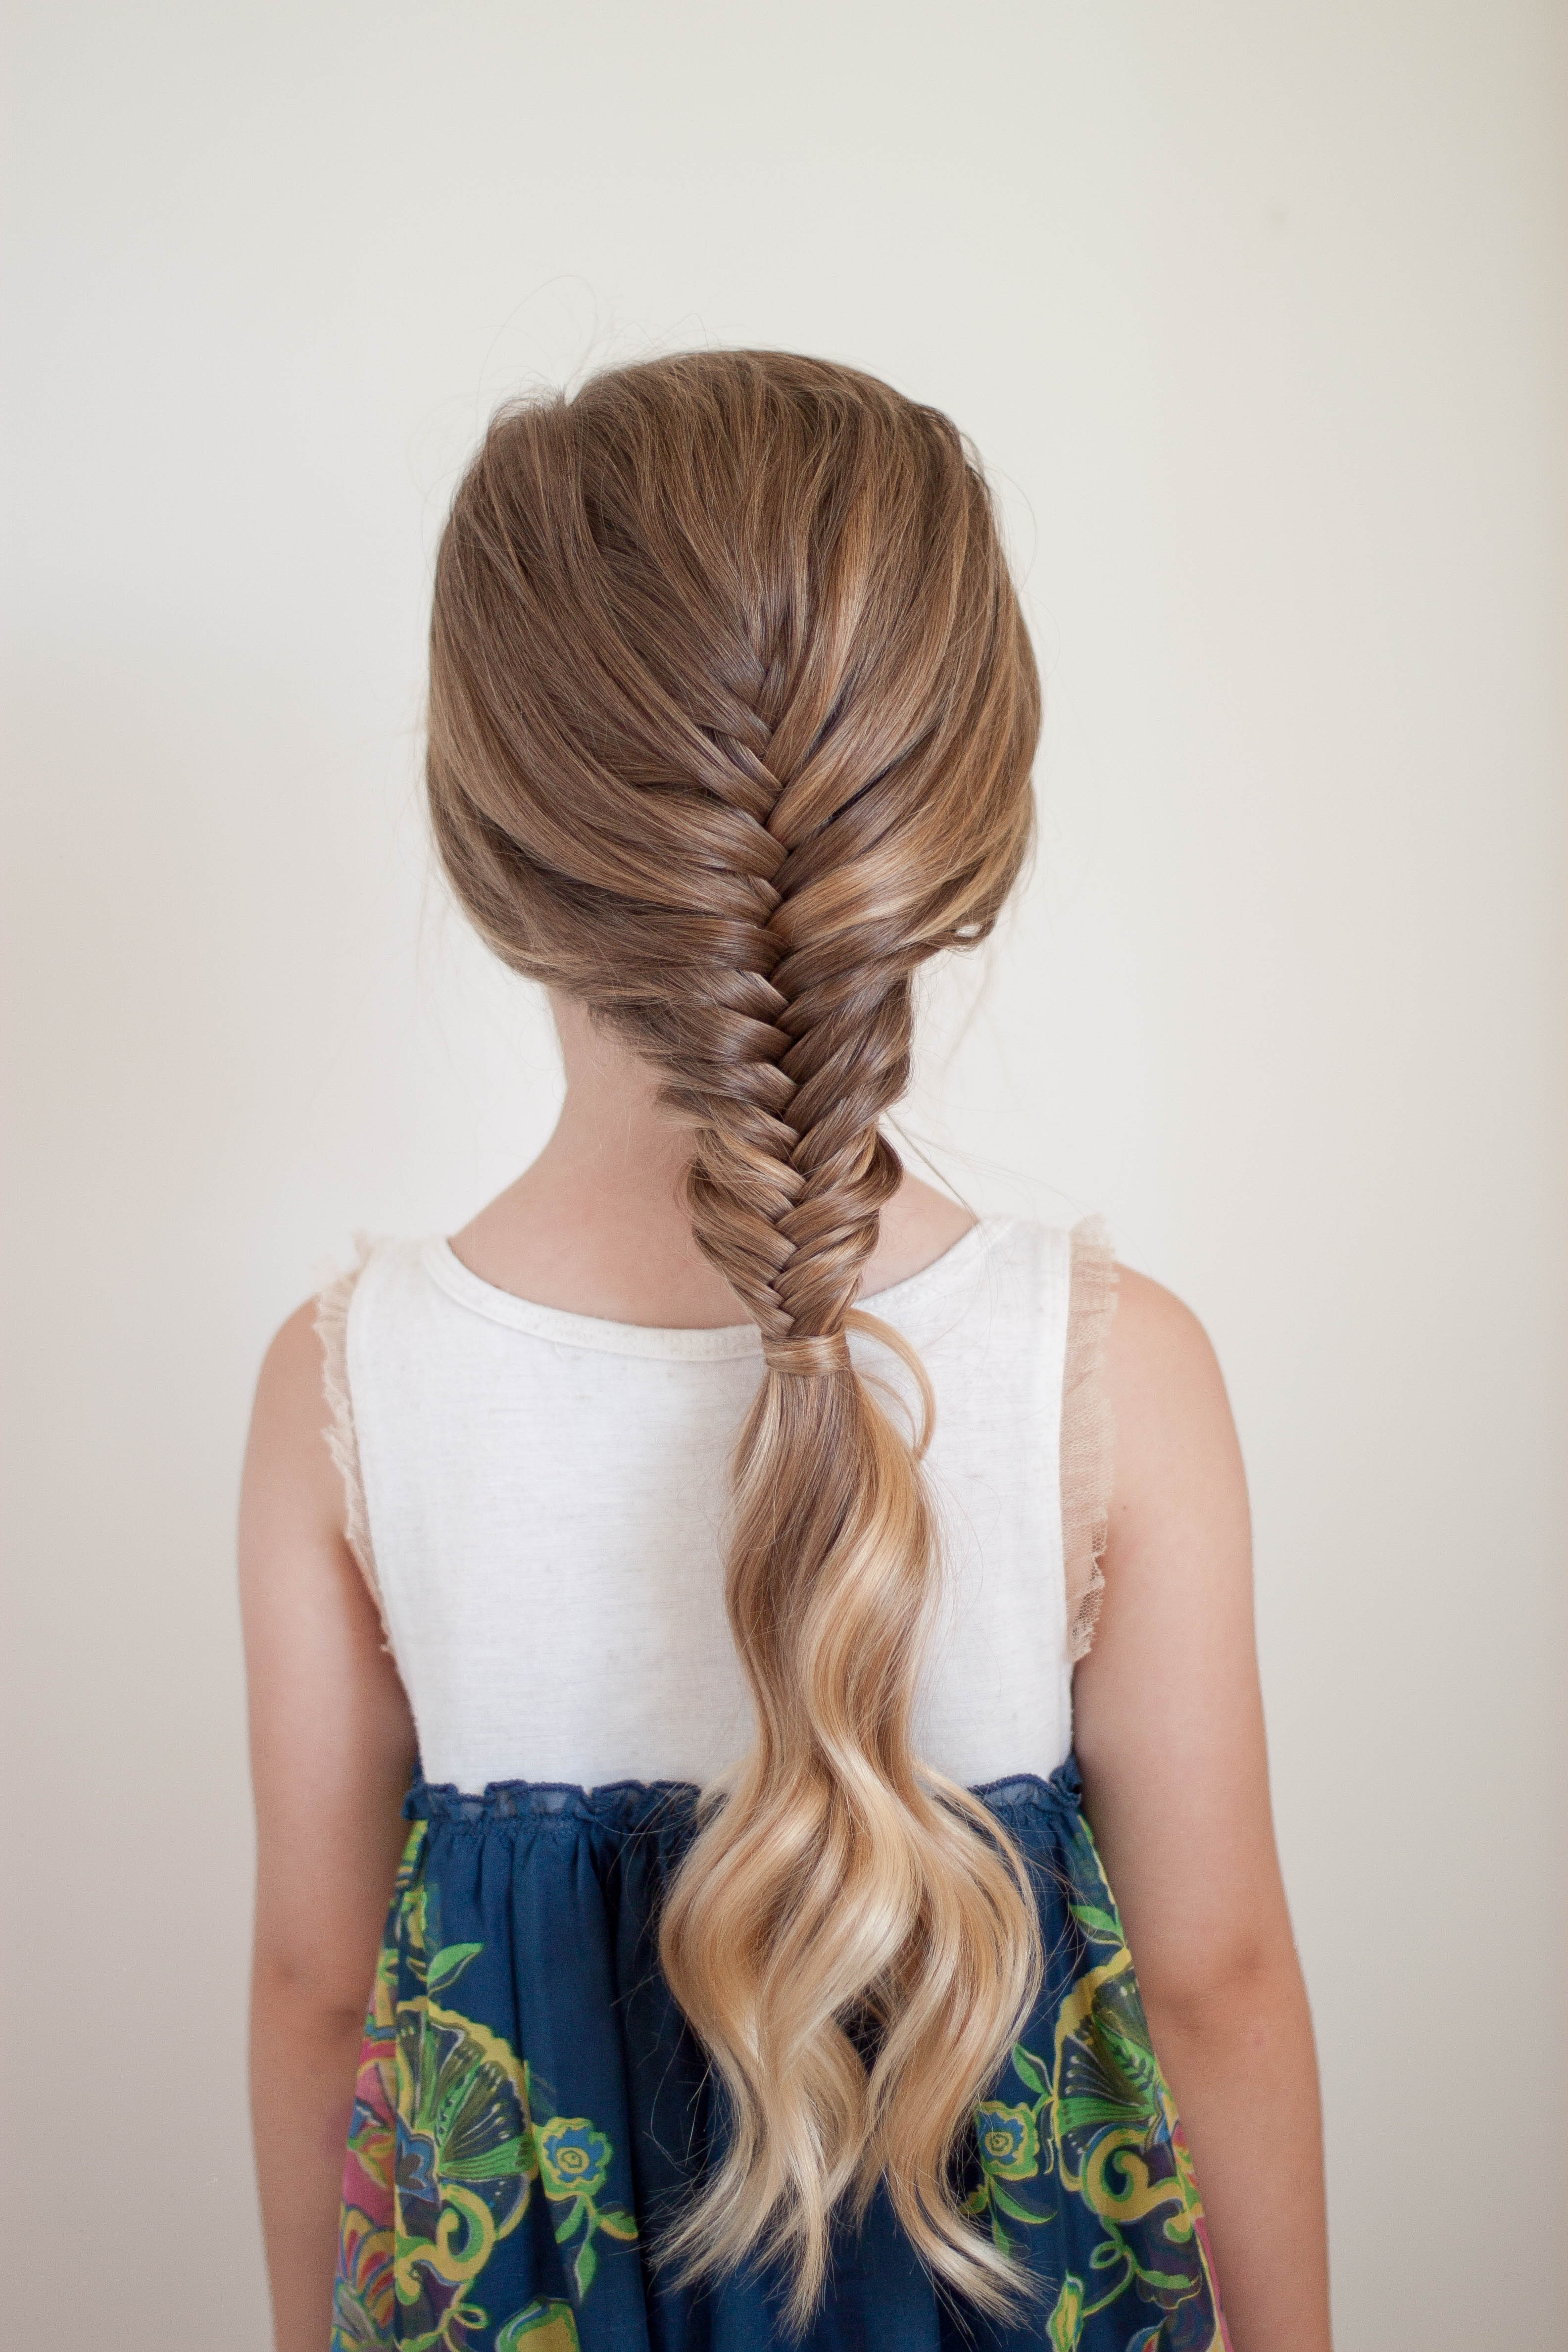 Cute Girls Hairstyles (View 10 of 20)